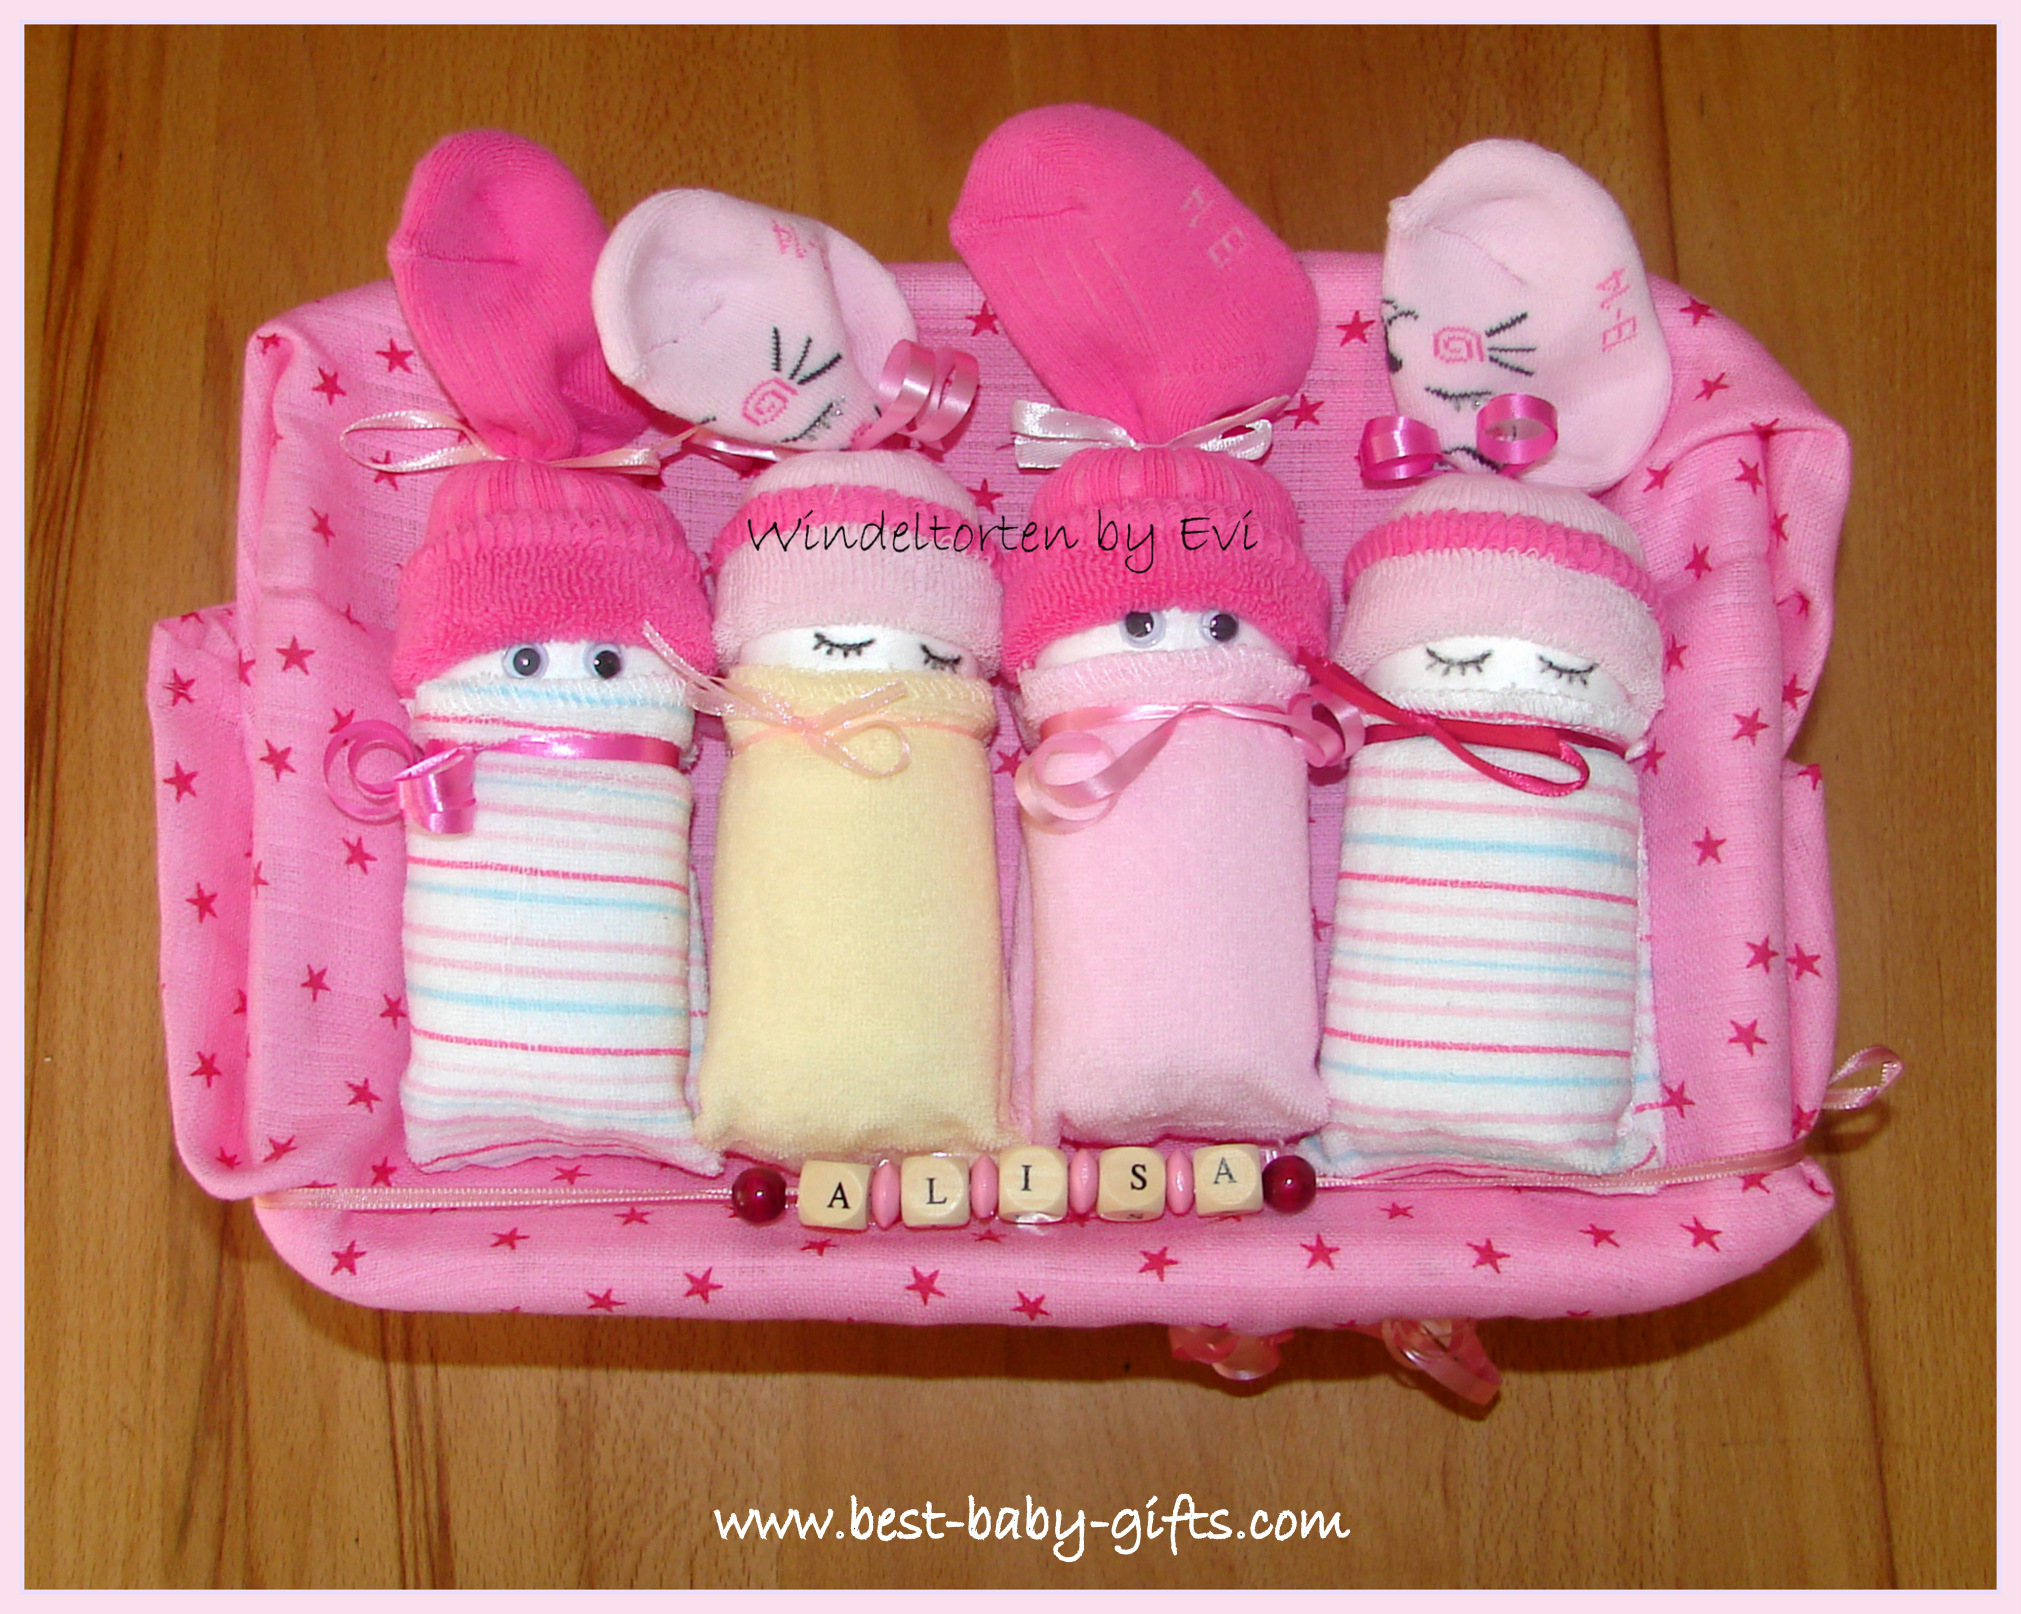 4 diaper babies in a box, in pink and yellow colors for a baby girl, personalized with a name band and wooden letters 'Alisa'